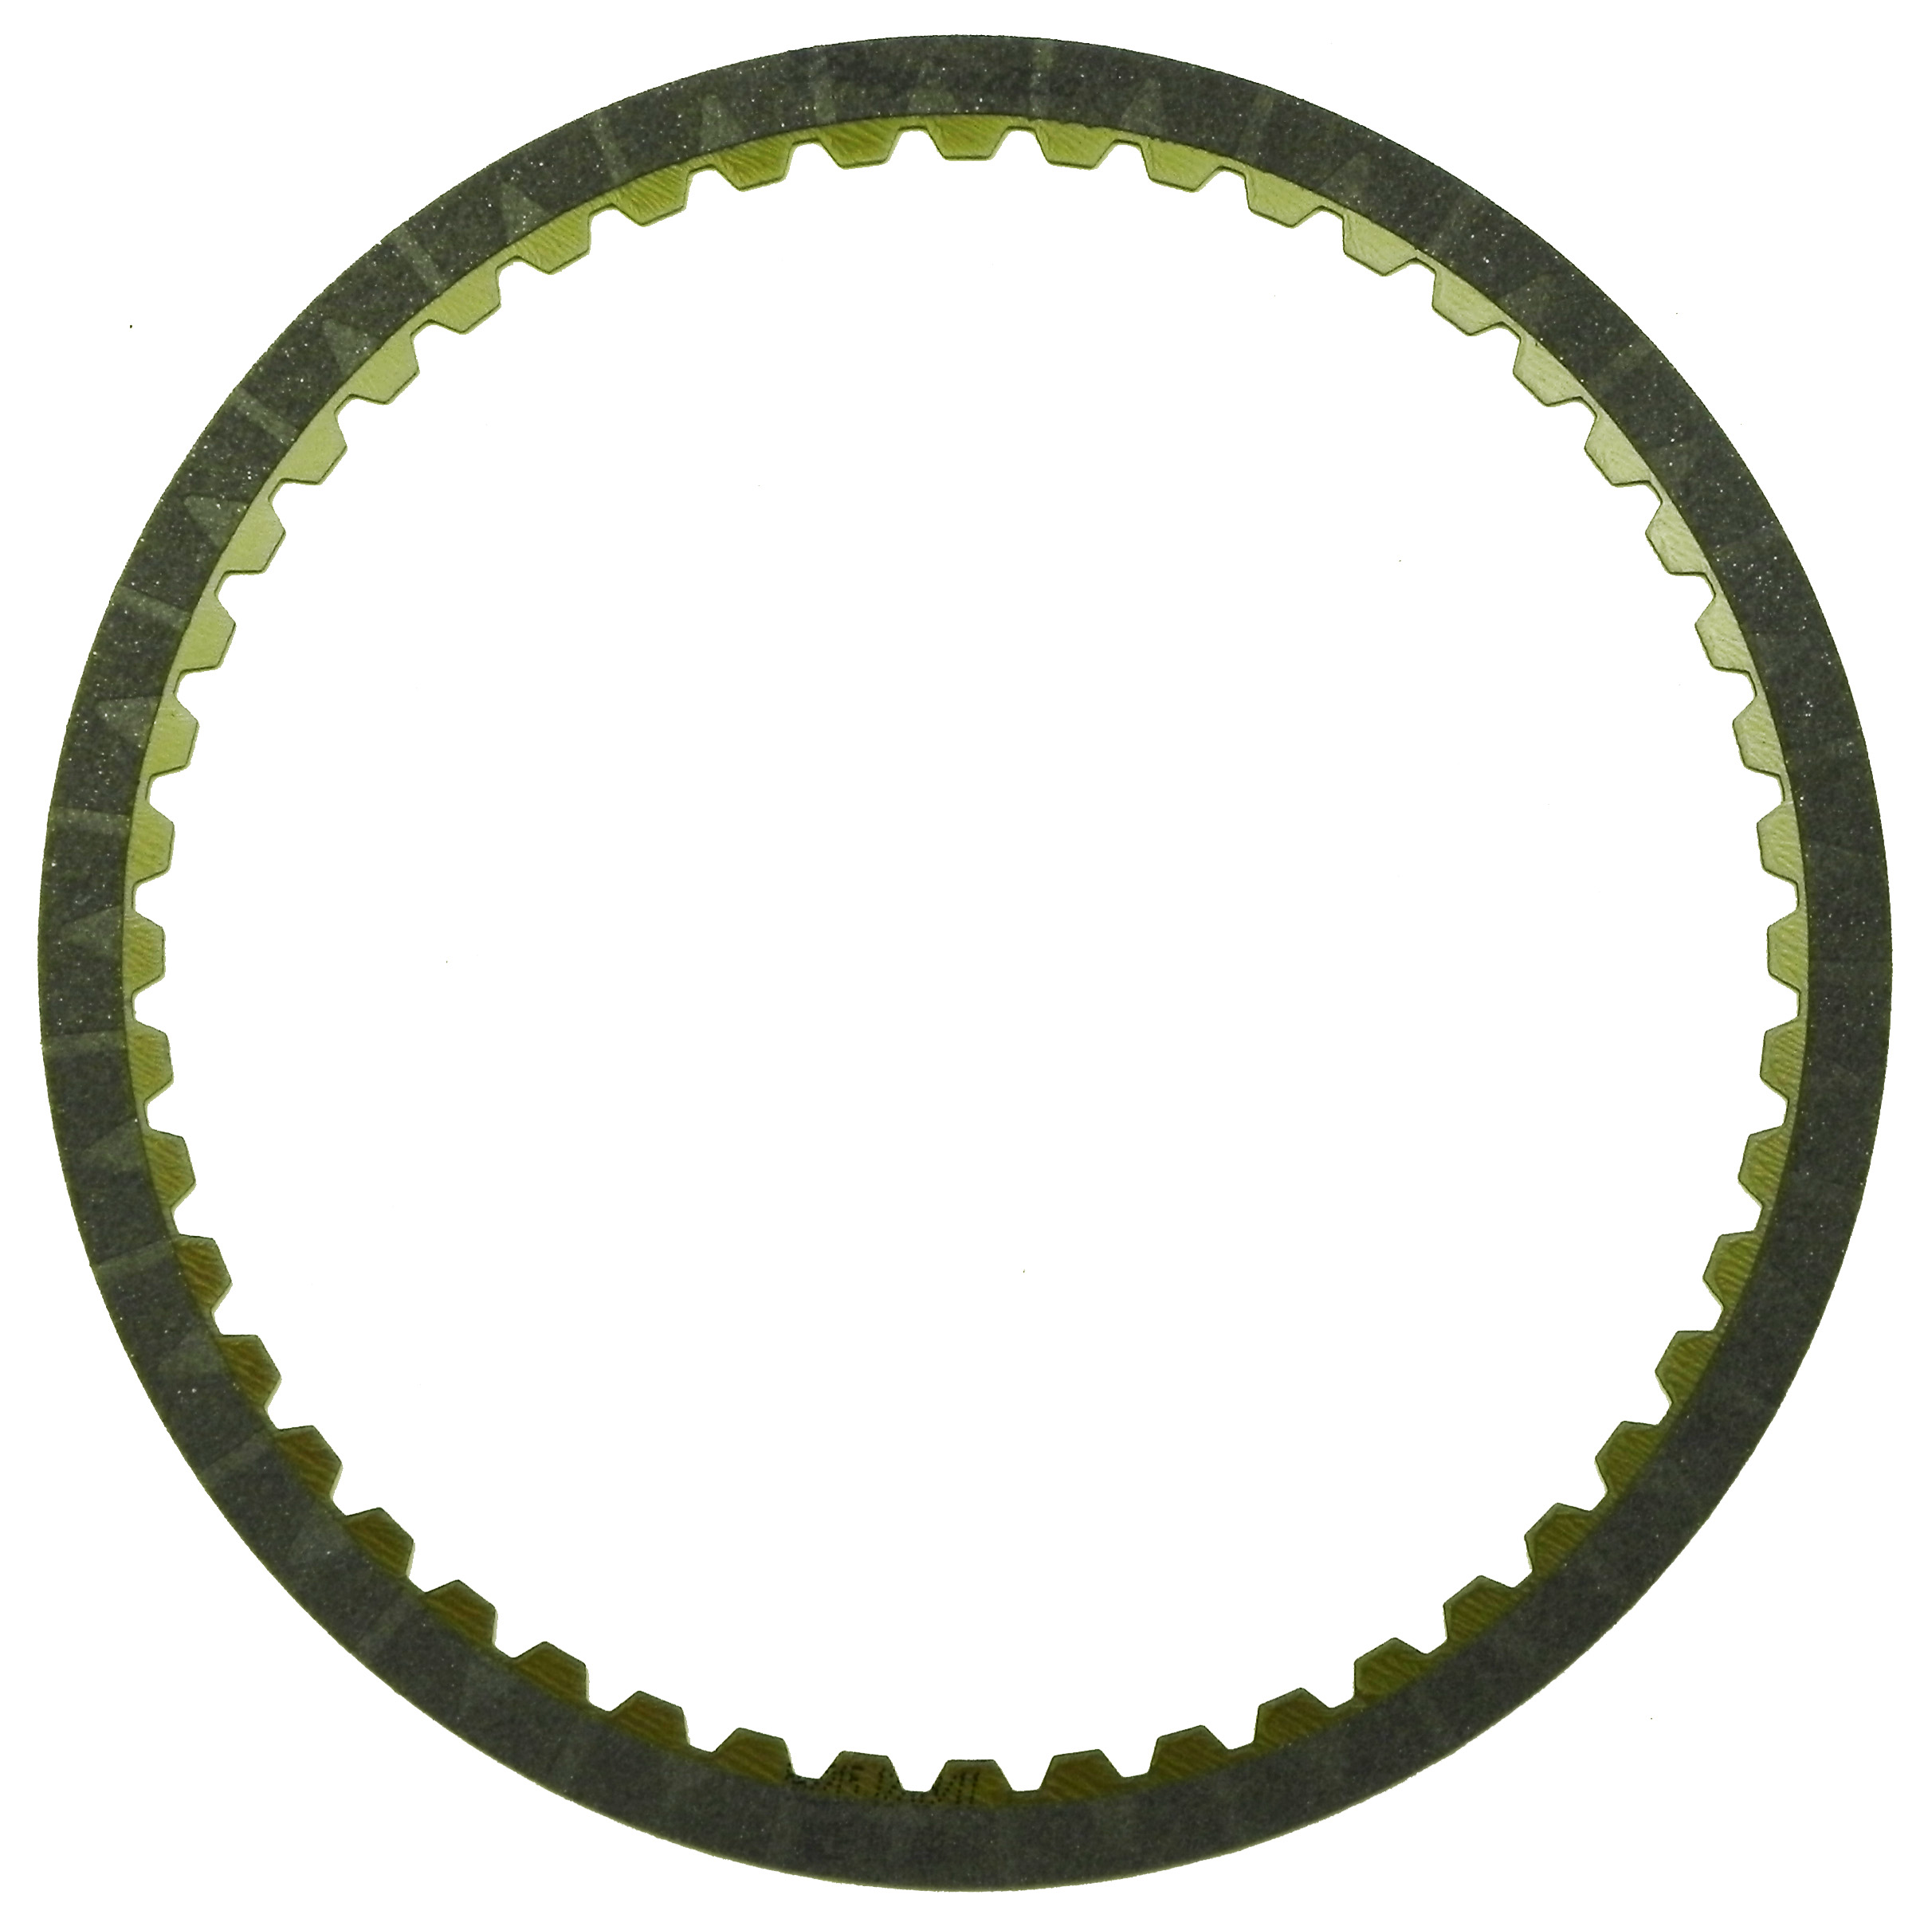 R562215 | 2007-ON Friction Clutch Plate High Energy Forward High Energy